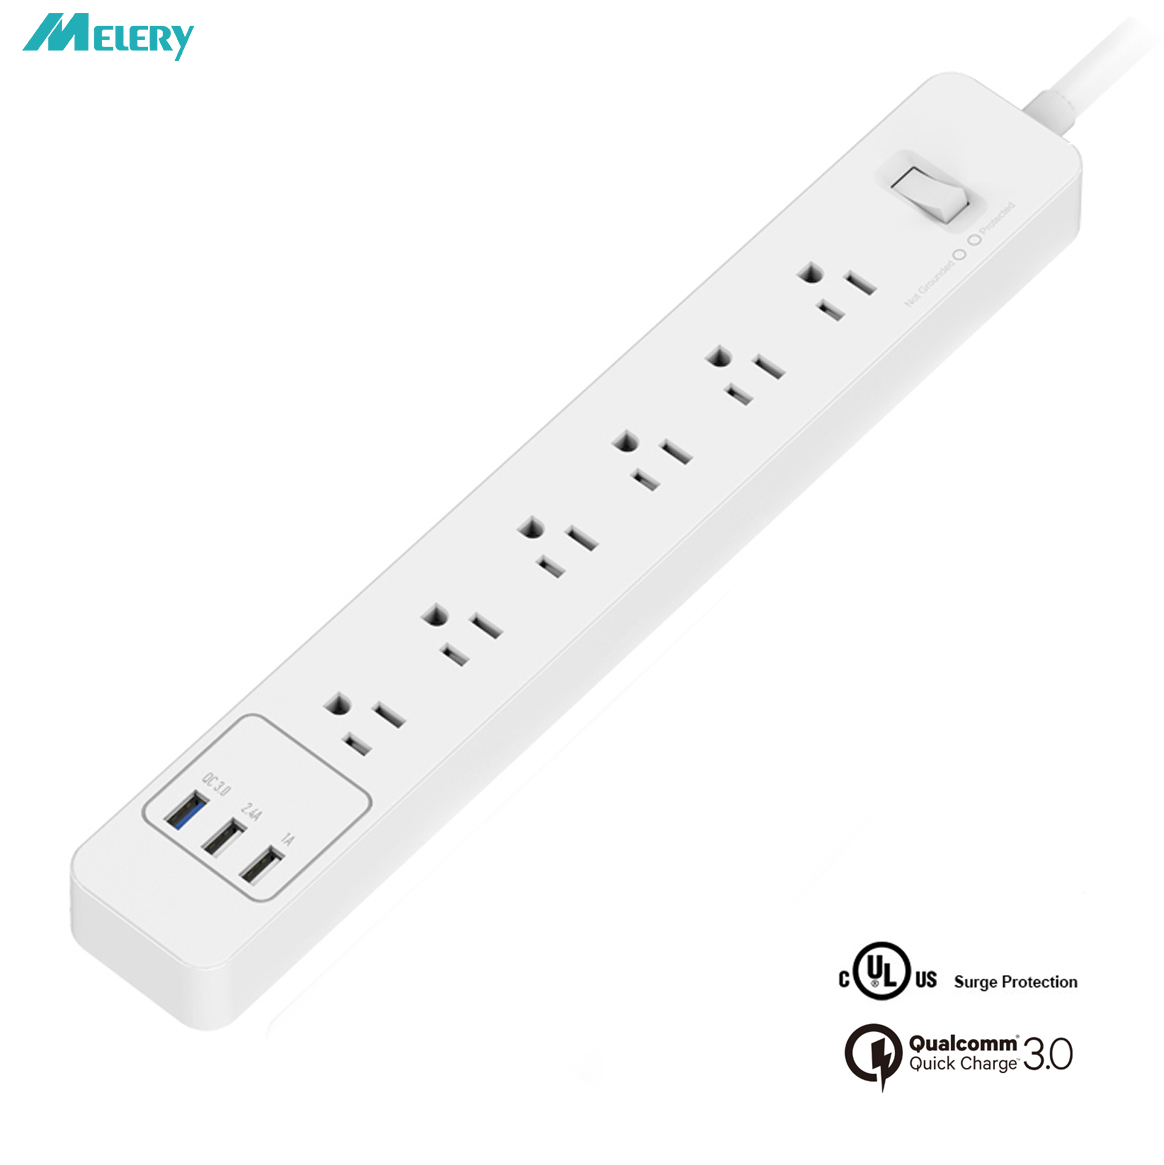 Electrical Sockets Aggressive Coswall Wall Power Socket 13a Uk Universal 3 Hole Switched Outlet 2.1a Dual Usb Charger Port Led Indicator Electrical Sockets & Accessories